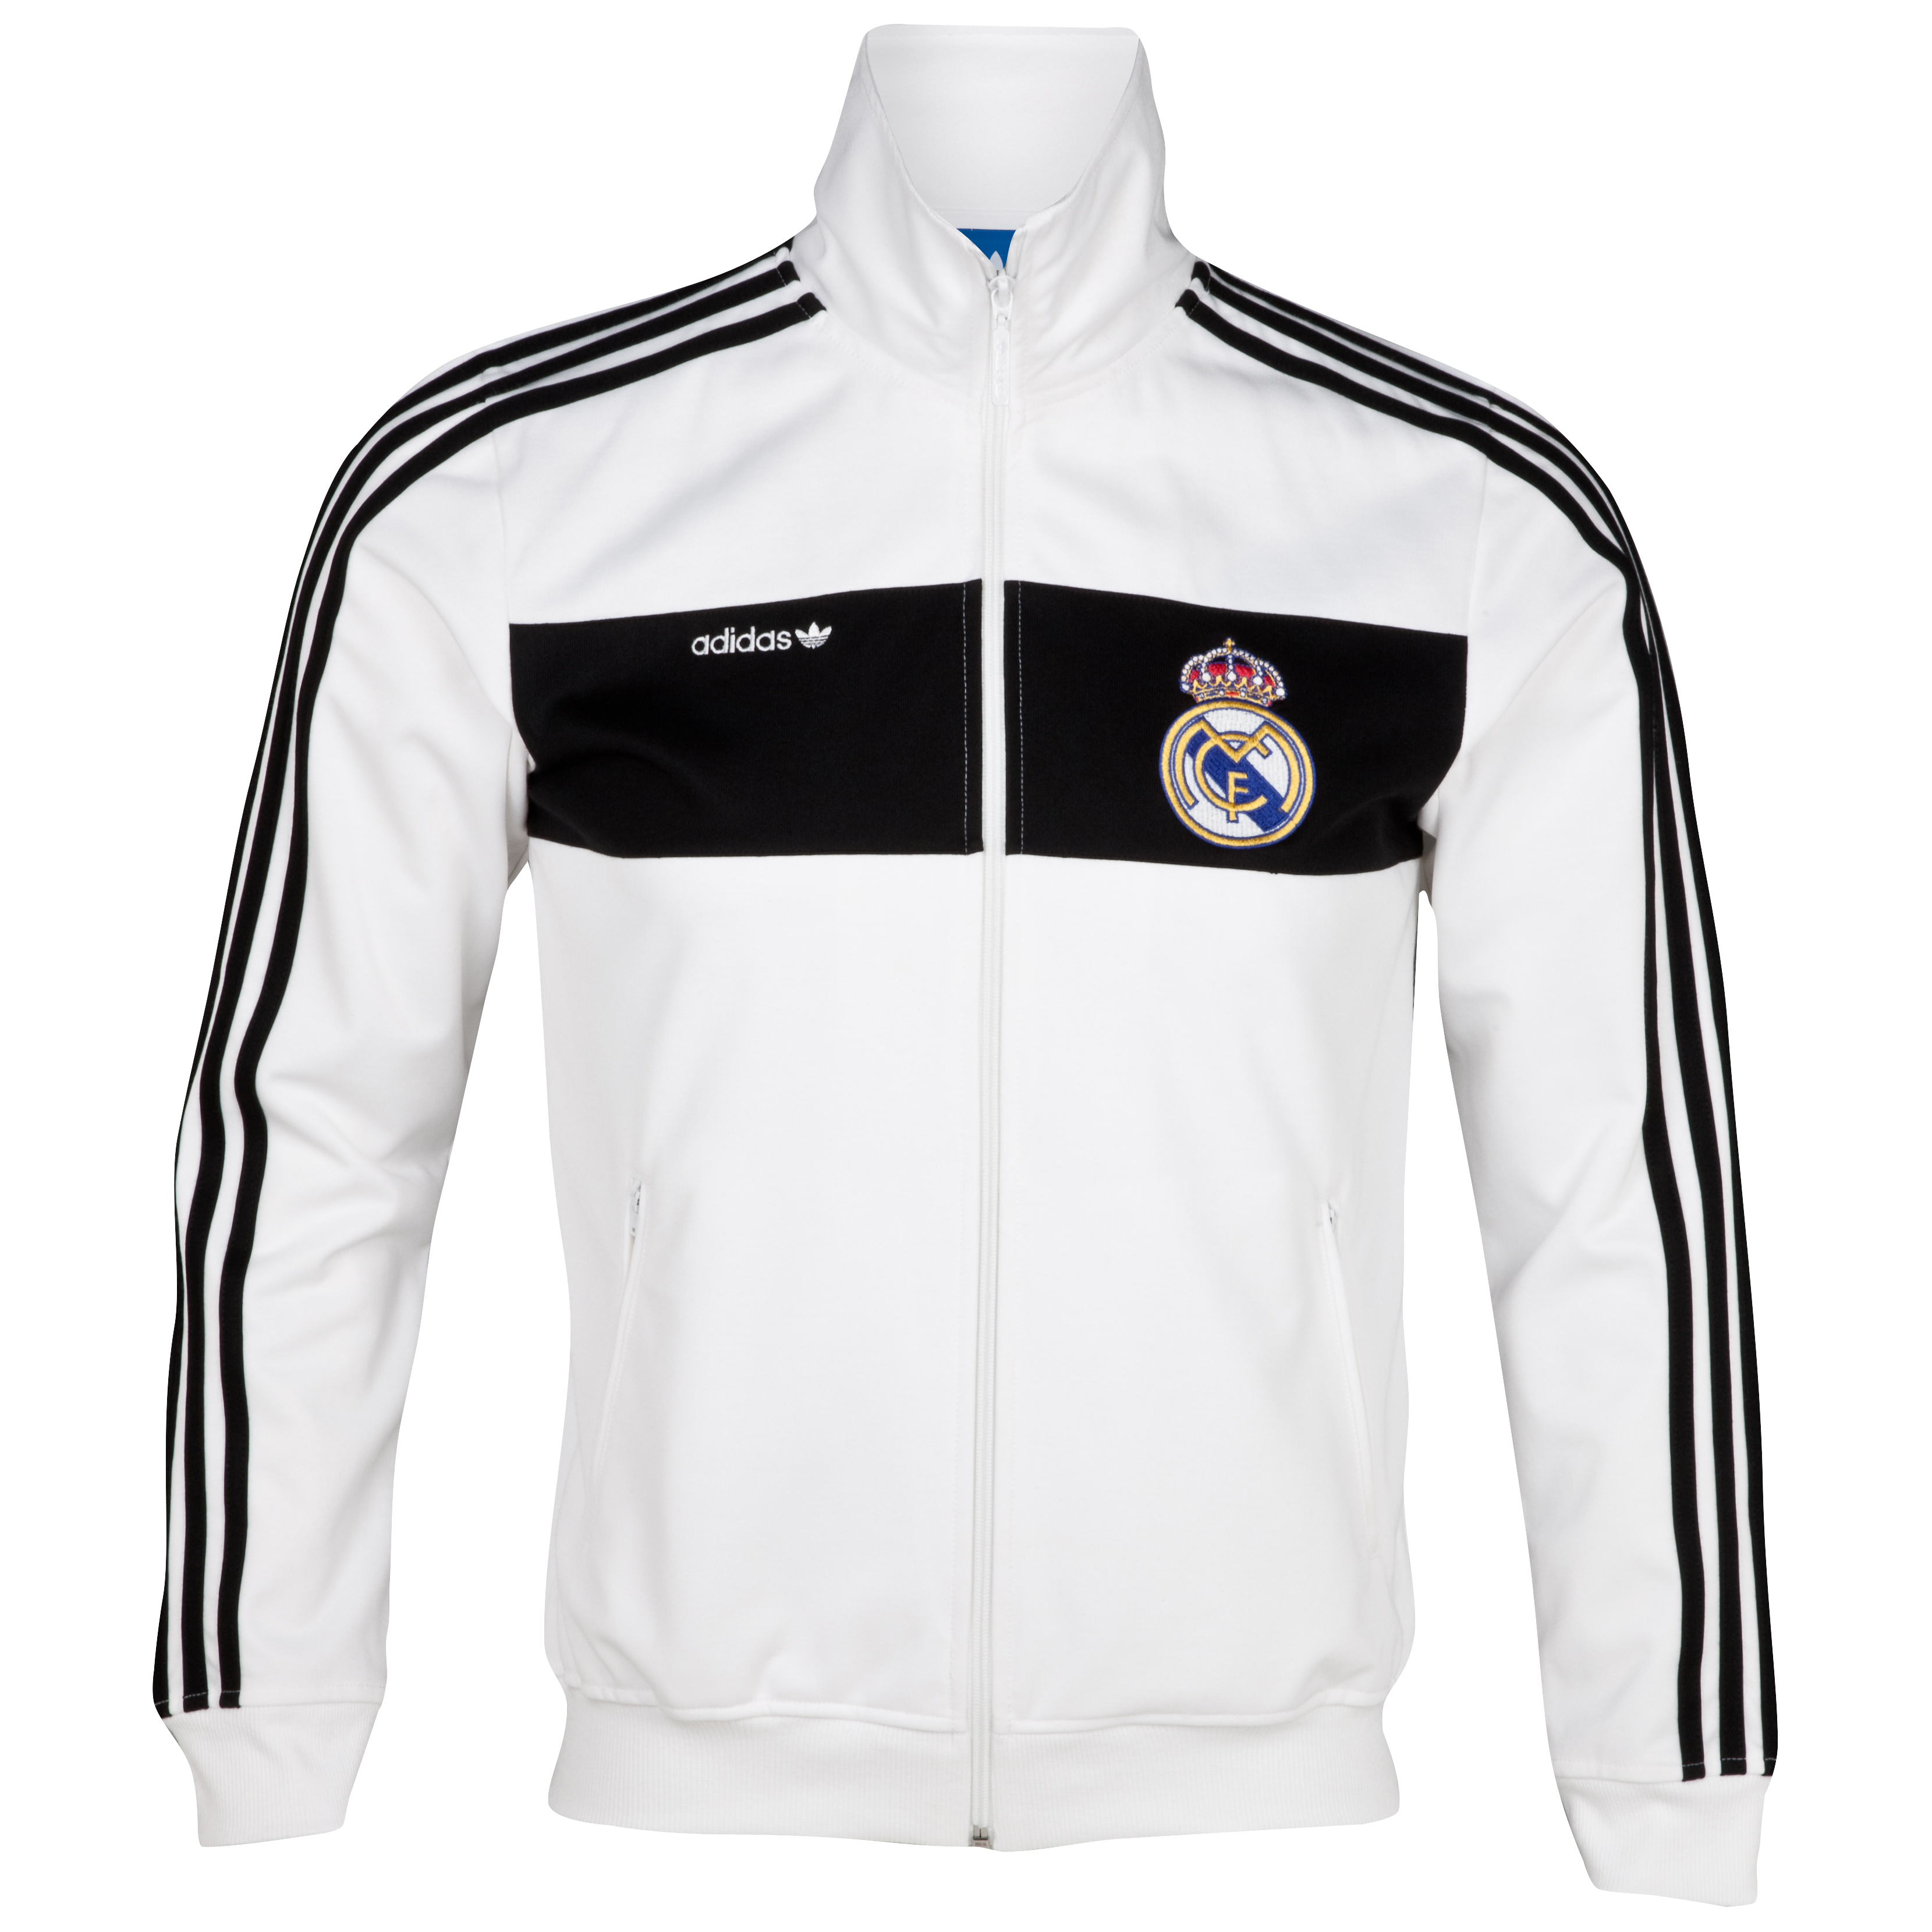 adidas Originals Real Madrid Beckenbauer Track Top - White/Black